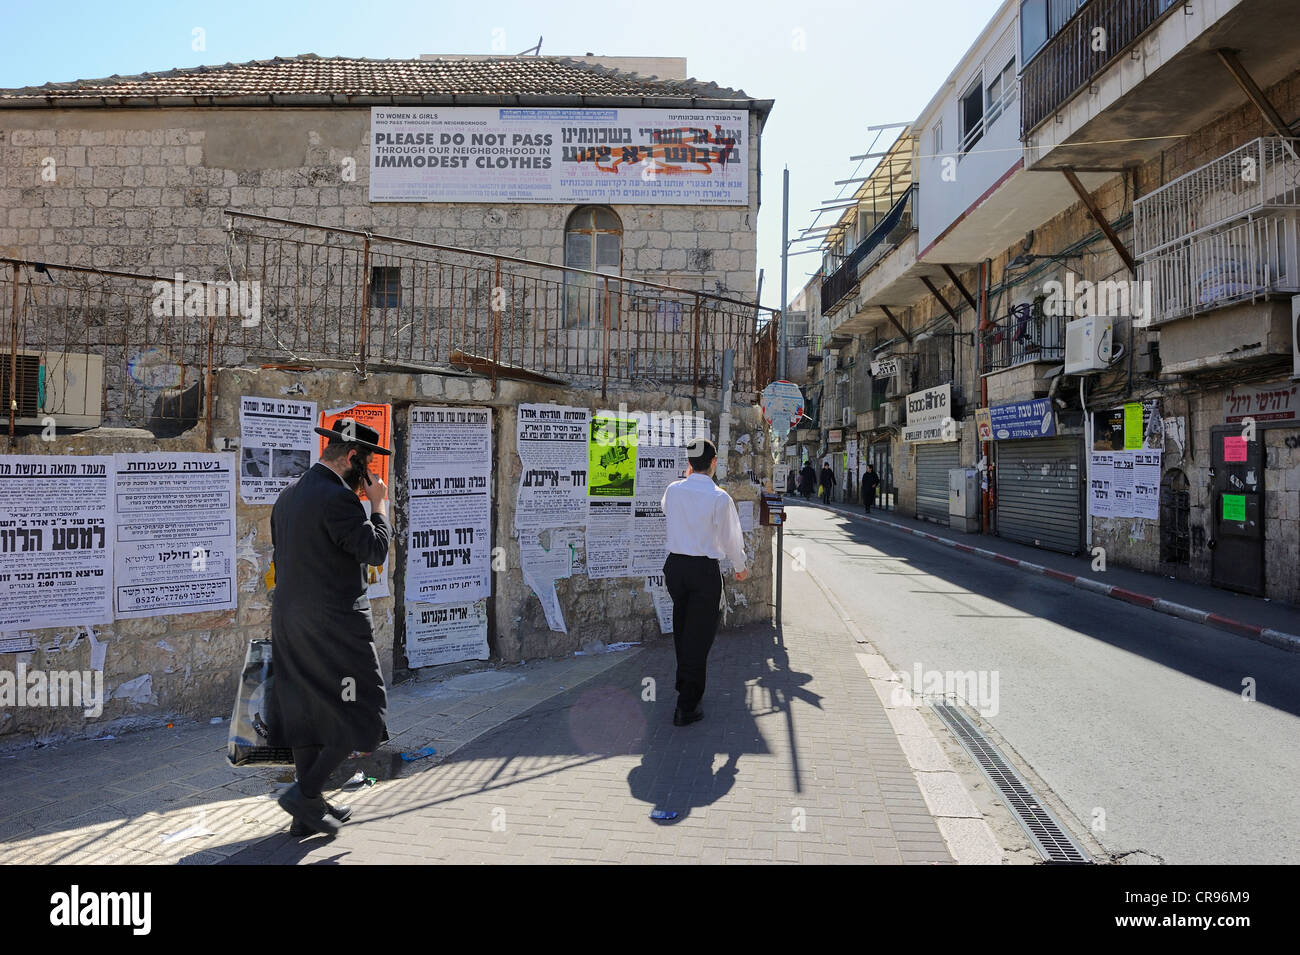 Banner up on a house with rules of conduct for tourists, wall newspapers and an Orthodox Jew with a mobile phone - Stock Image